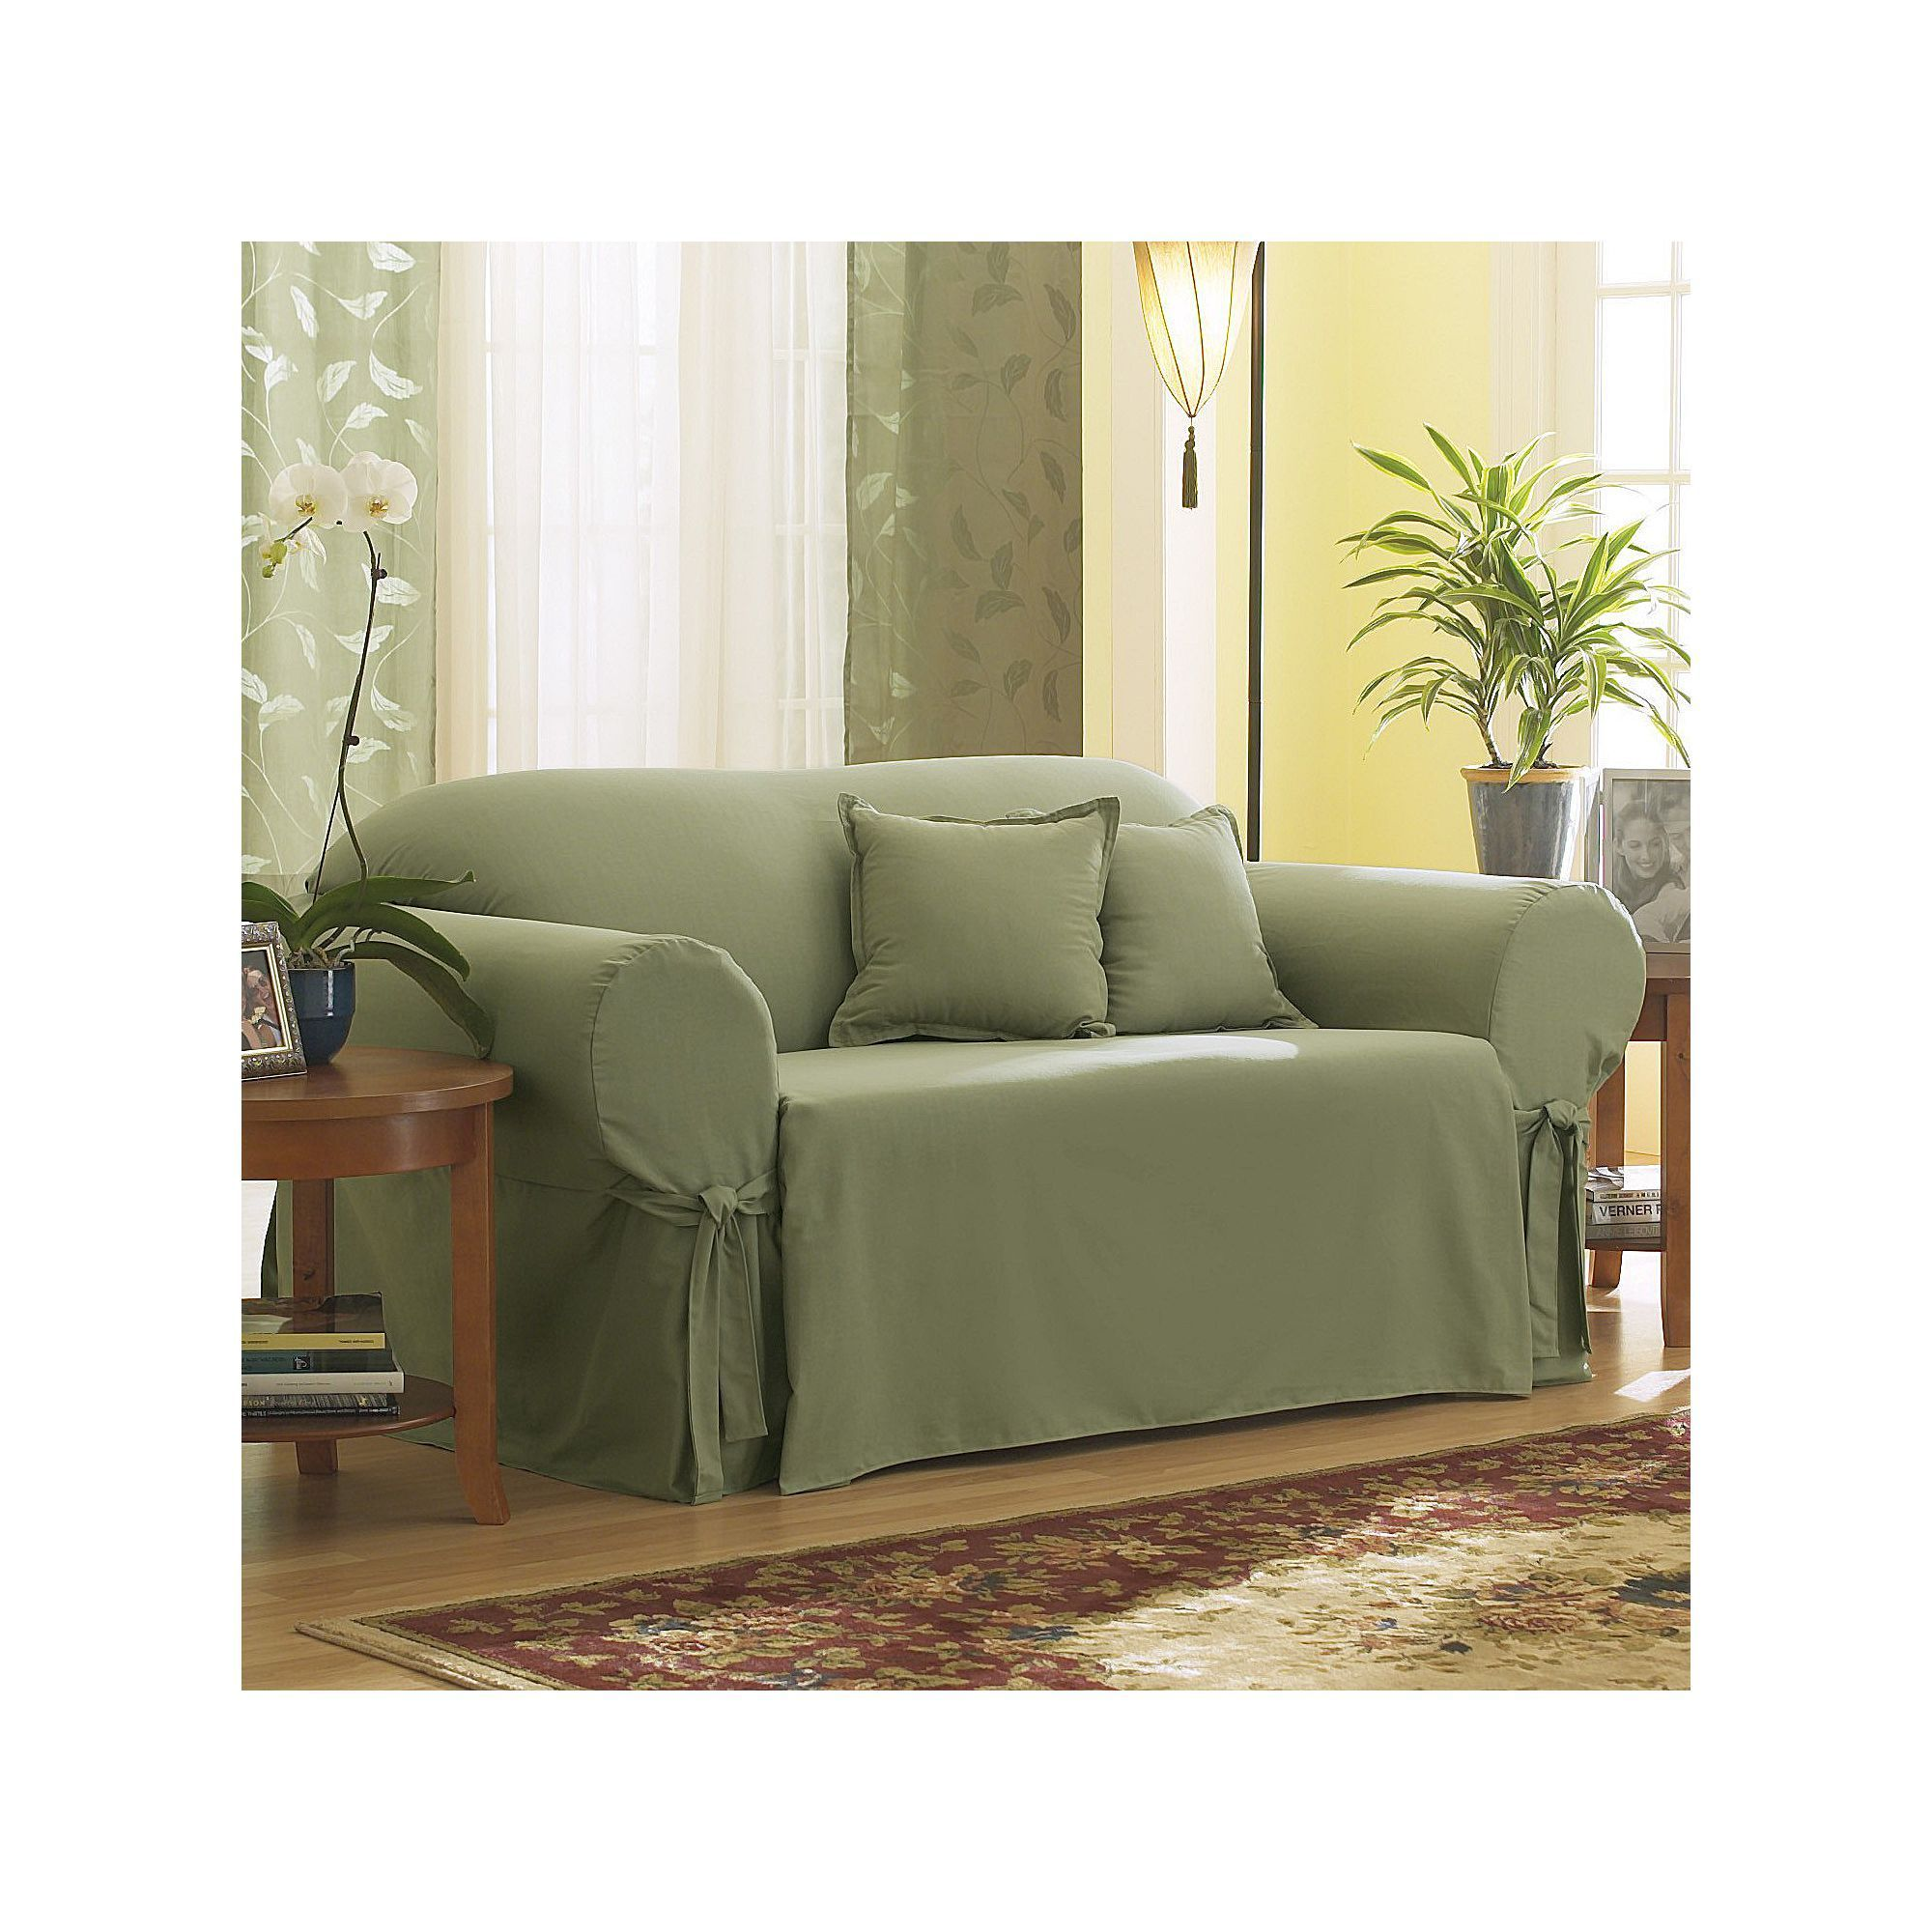 Terrific Sure Fit Solid Duck Cloth Sofa Slipcover Green In 2019 Alphanode Cool Chair Designs And Ideas Alphanodeonline